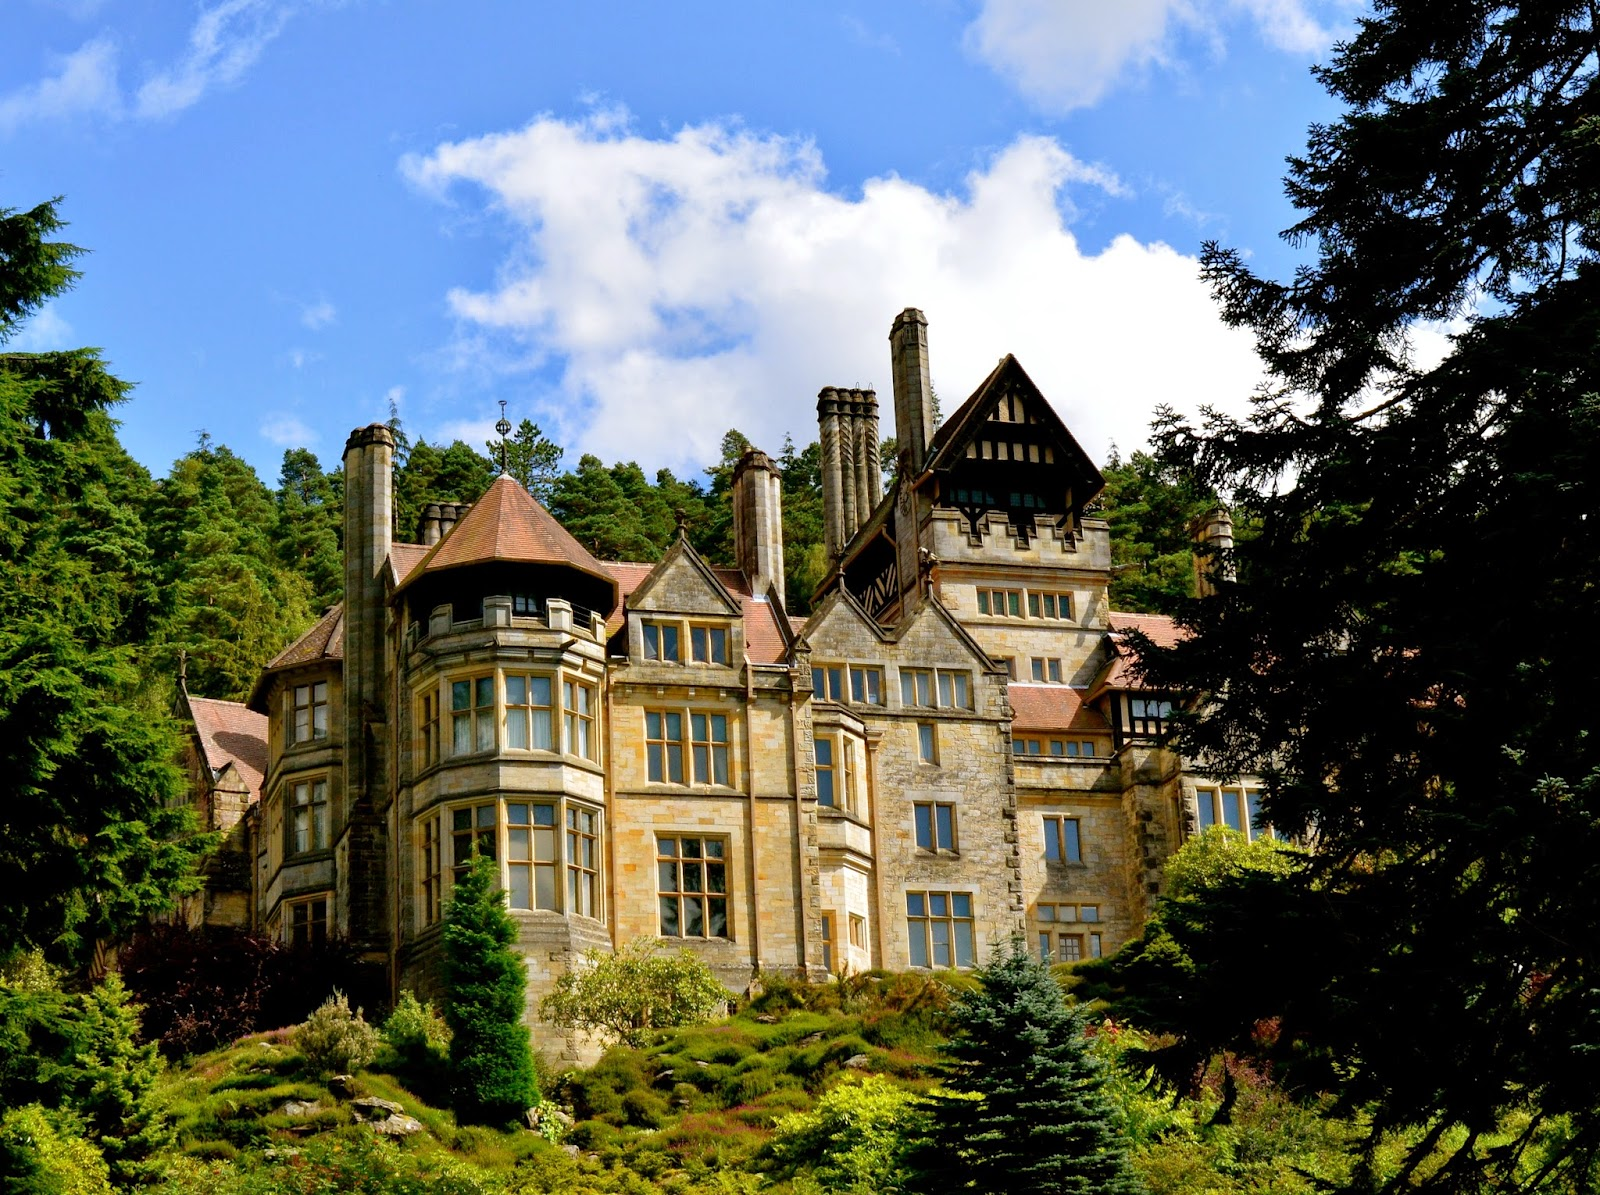 11th Century English Home - cragside_Beautiful 11th Century English Home - cragside  Trends_121577.jpg